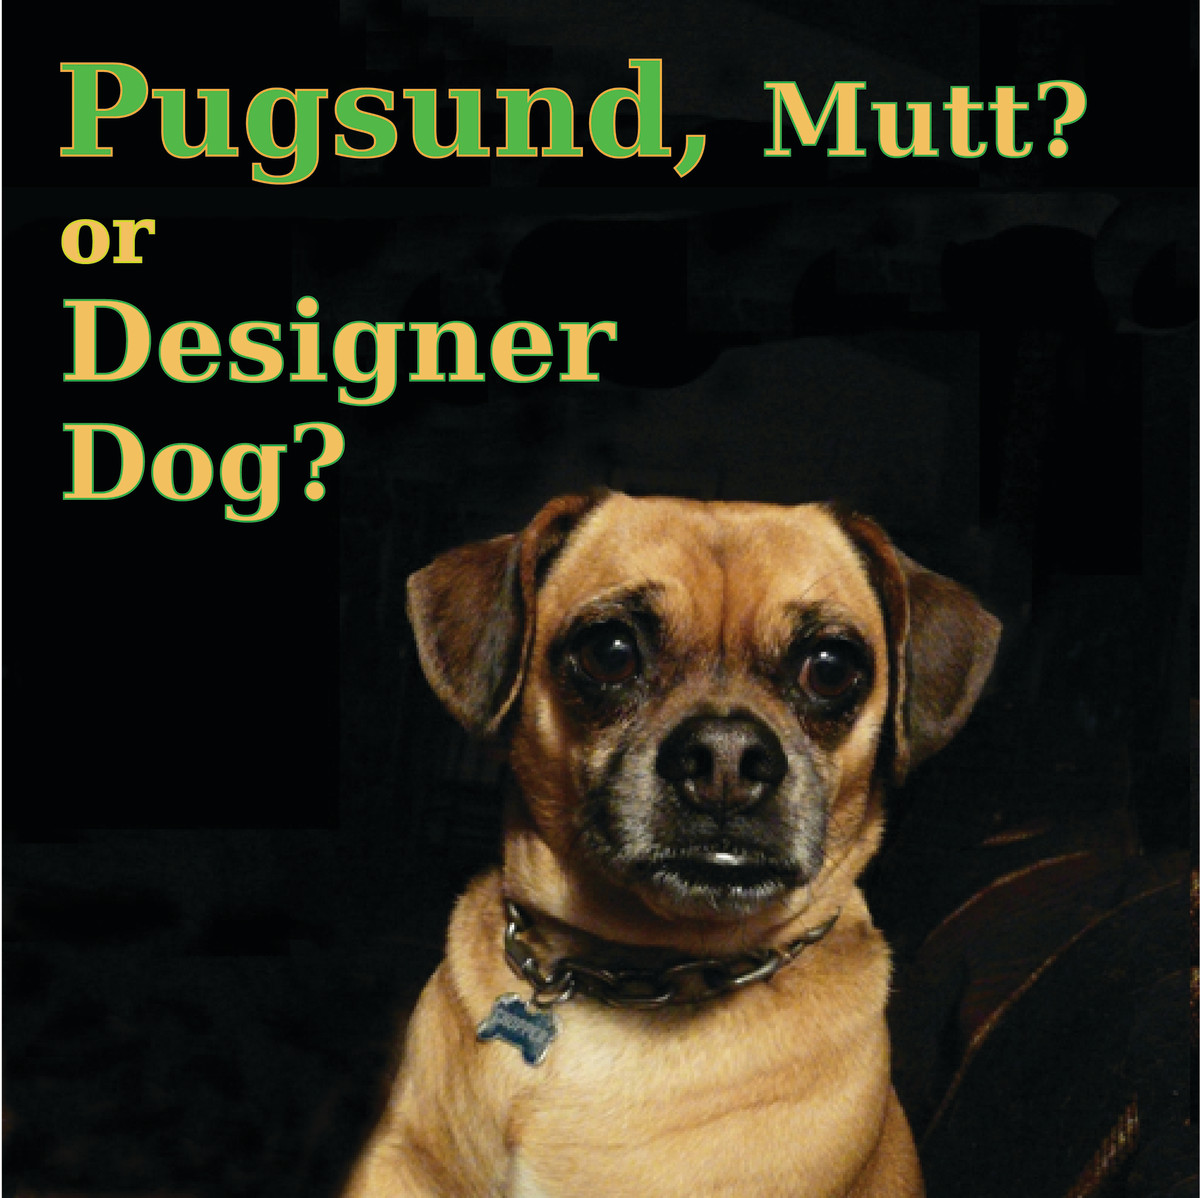 Pugsund: Mutt or Designer Dog?